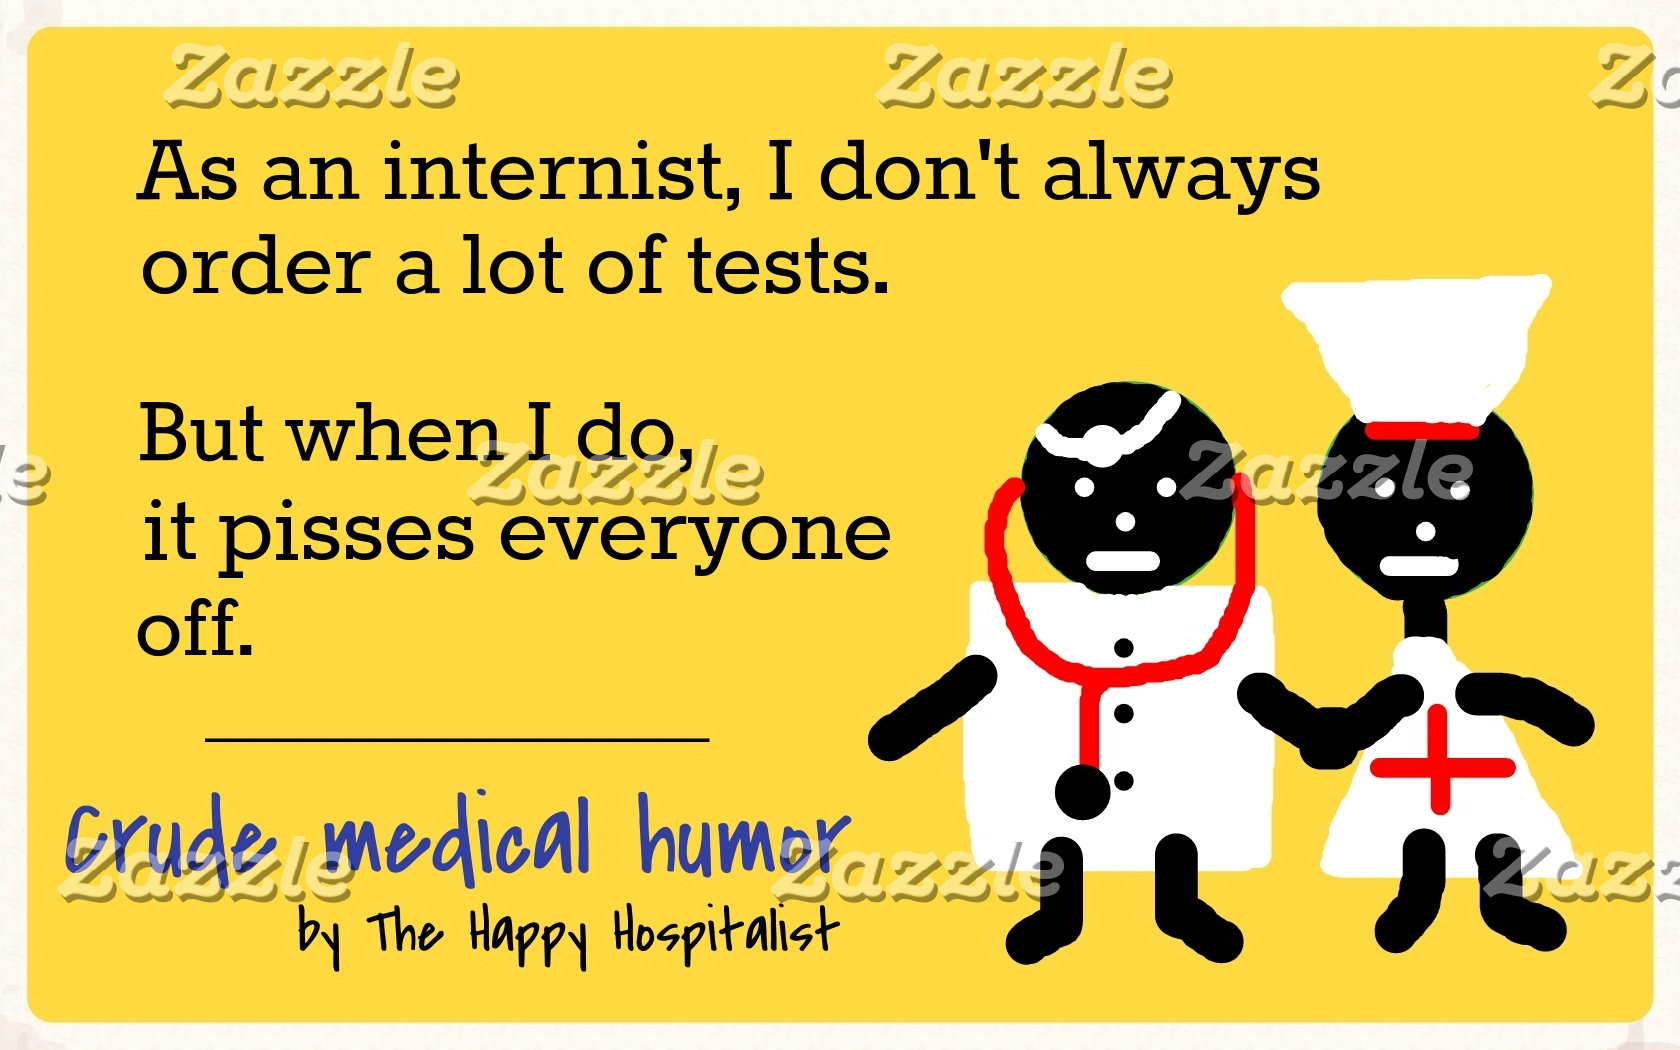 As an internist, I don't always order a lot of...